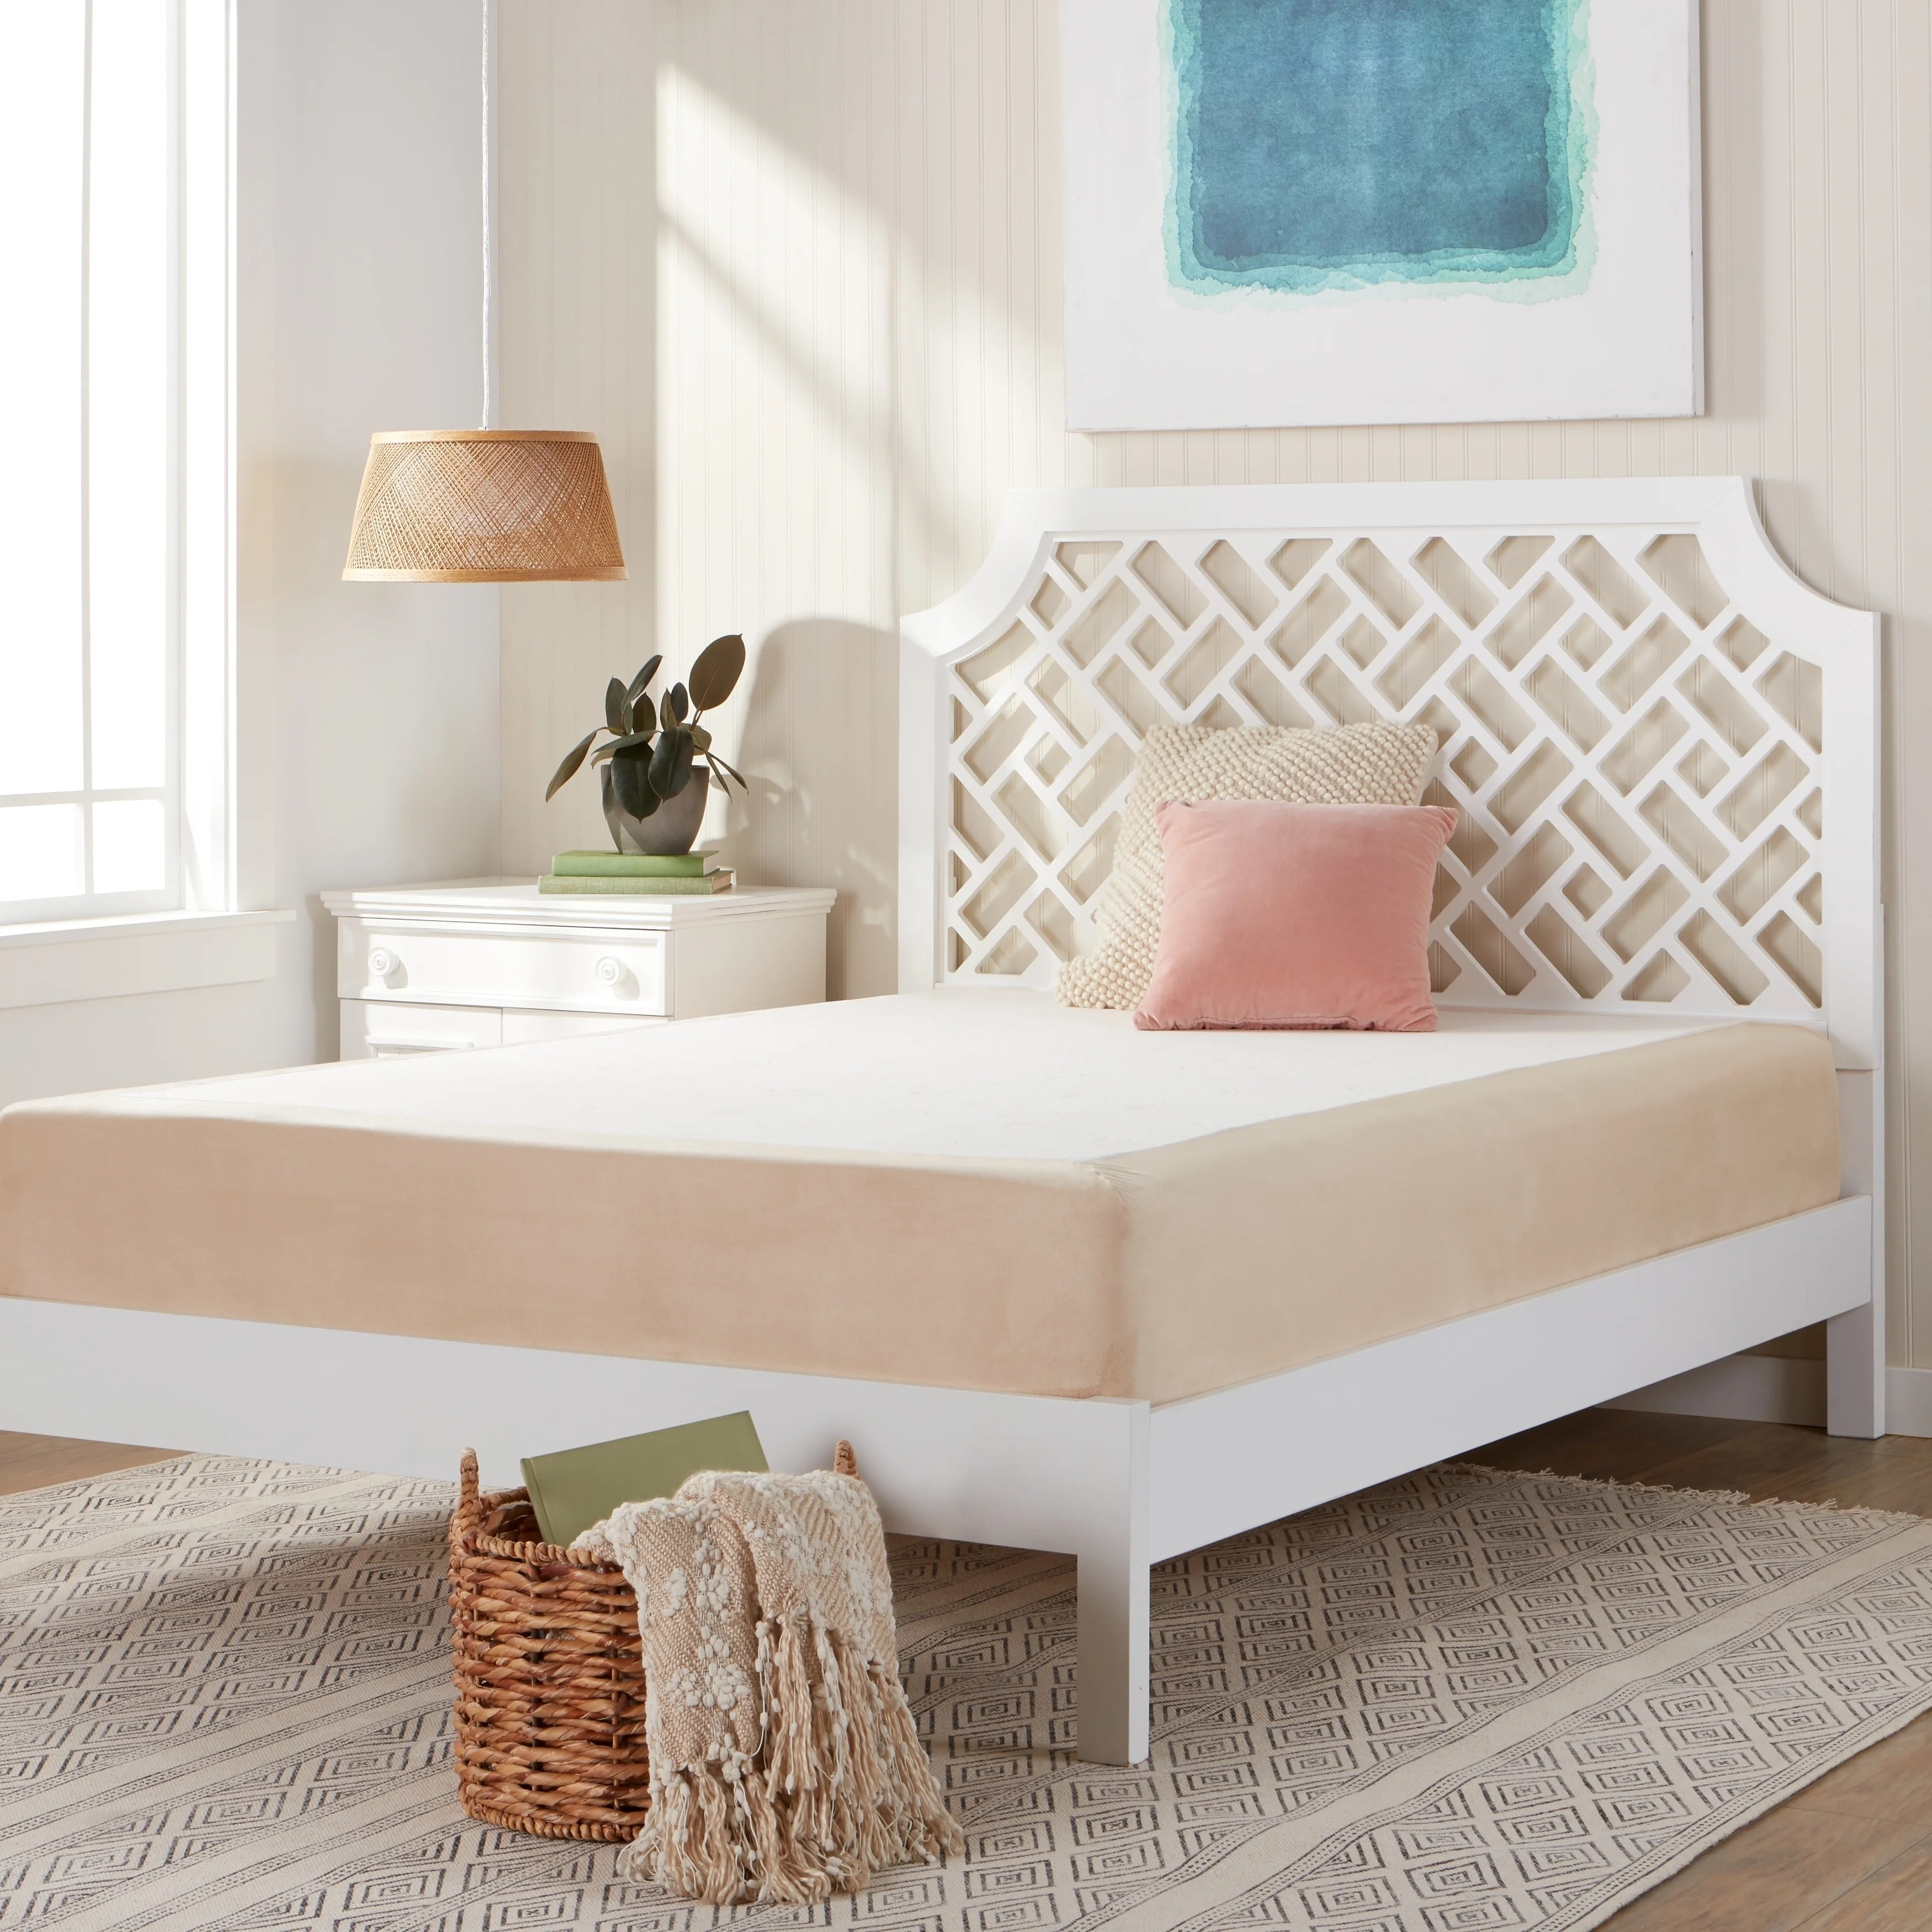 Dreams Mattress Guarantee Comfort Dreams Select A Firmness 11 Inch Memory Foam Mattress